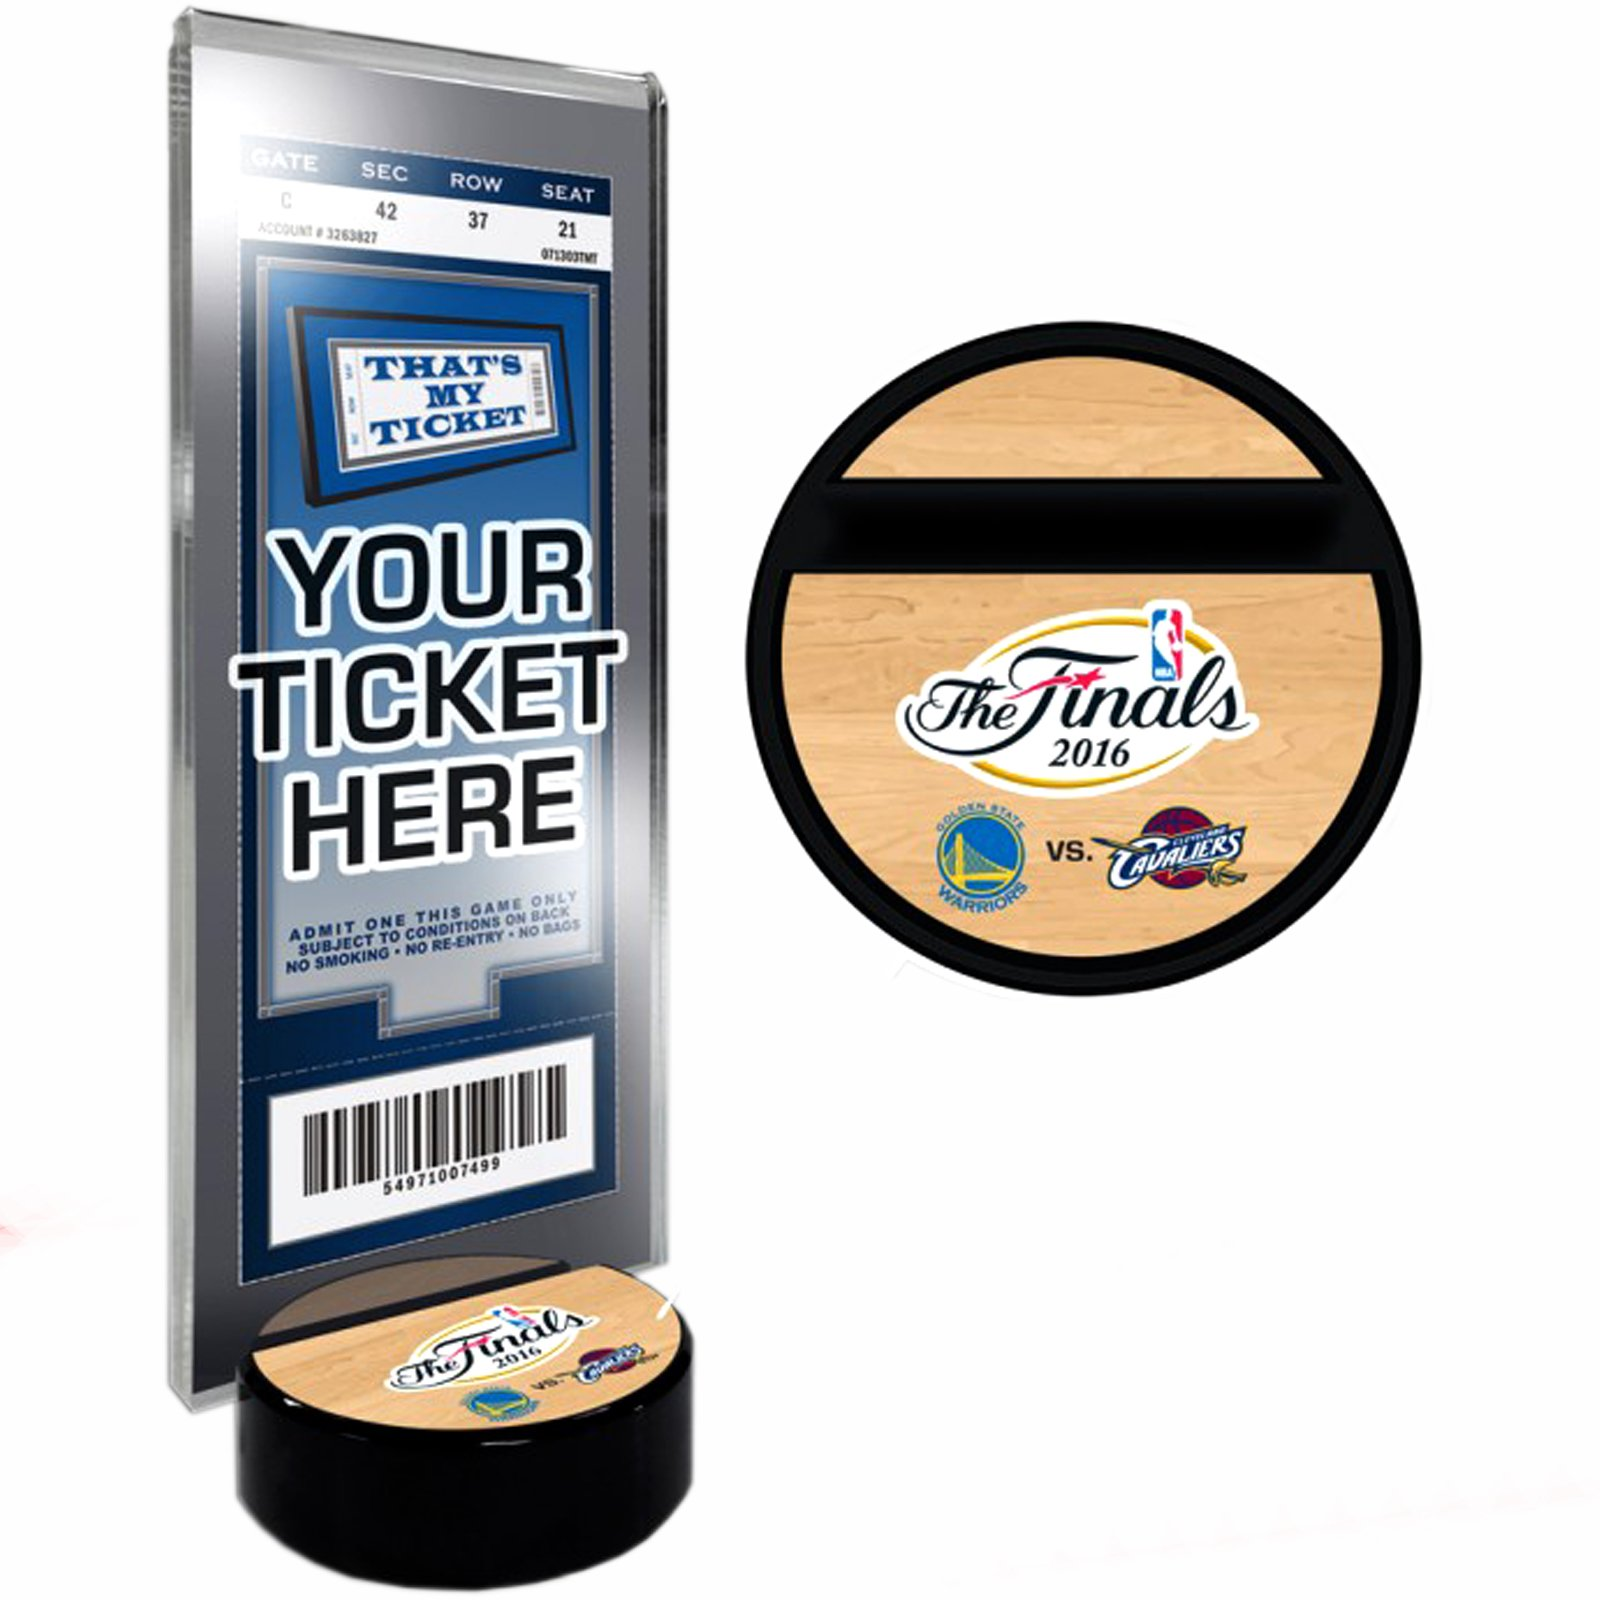 2016 NBA Finals Golden State Warriors Cleveland Cavaliers Ticket Holder by That's My Ticket